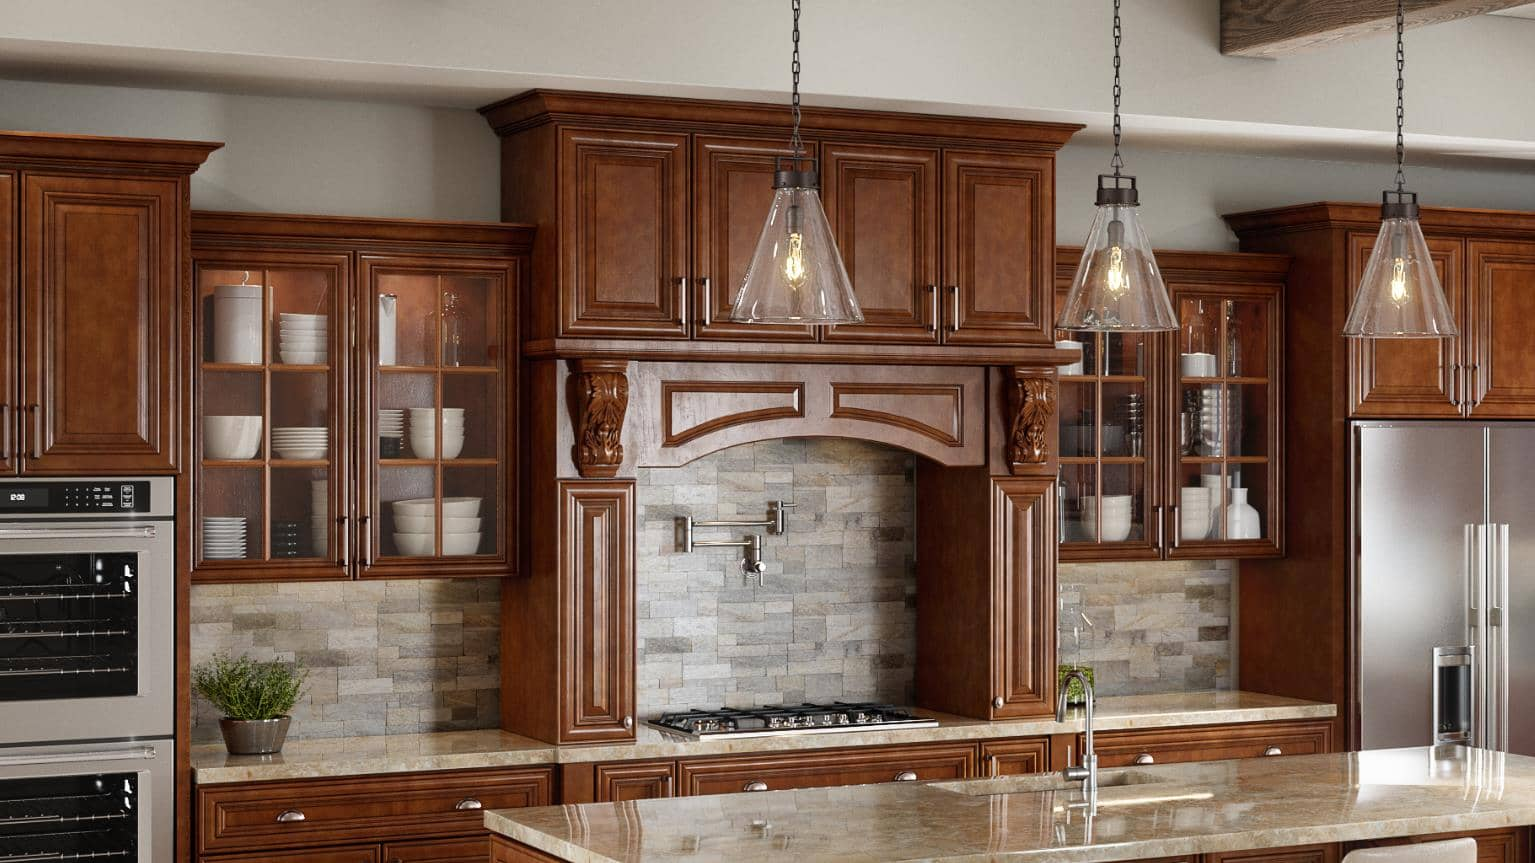 A Comprehensive Guide to Choose the Best Kitchen Sinks